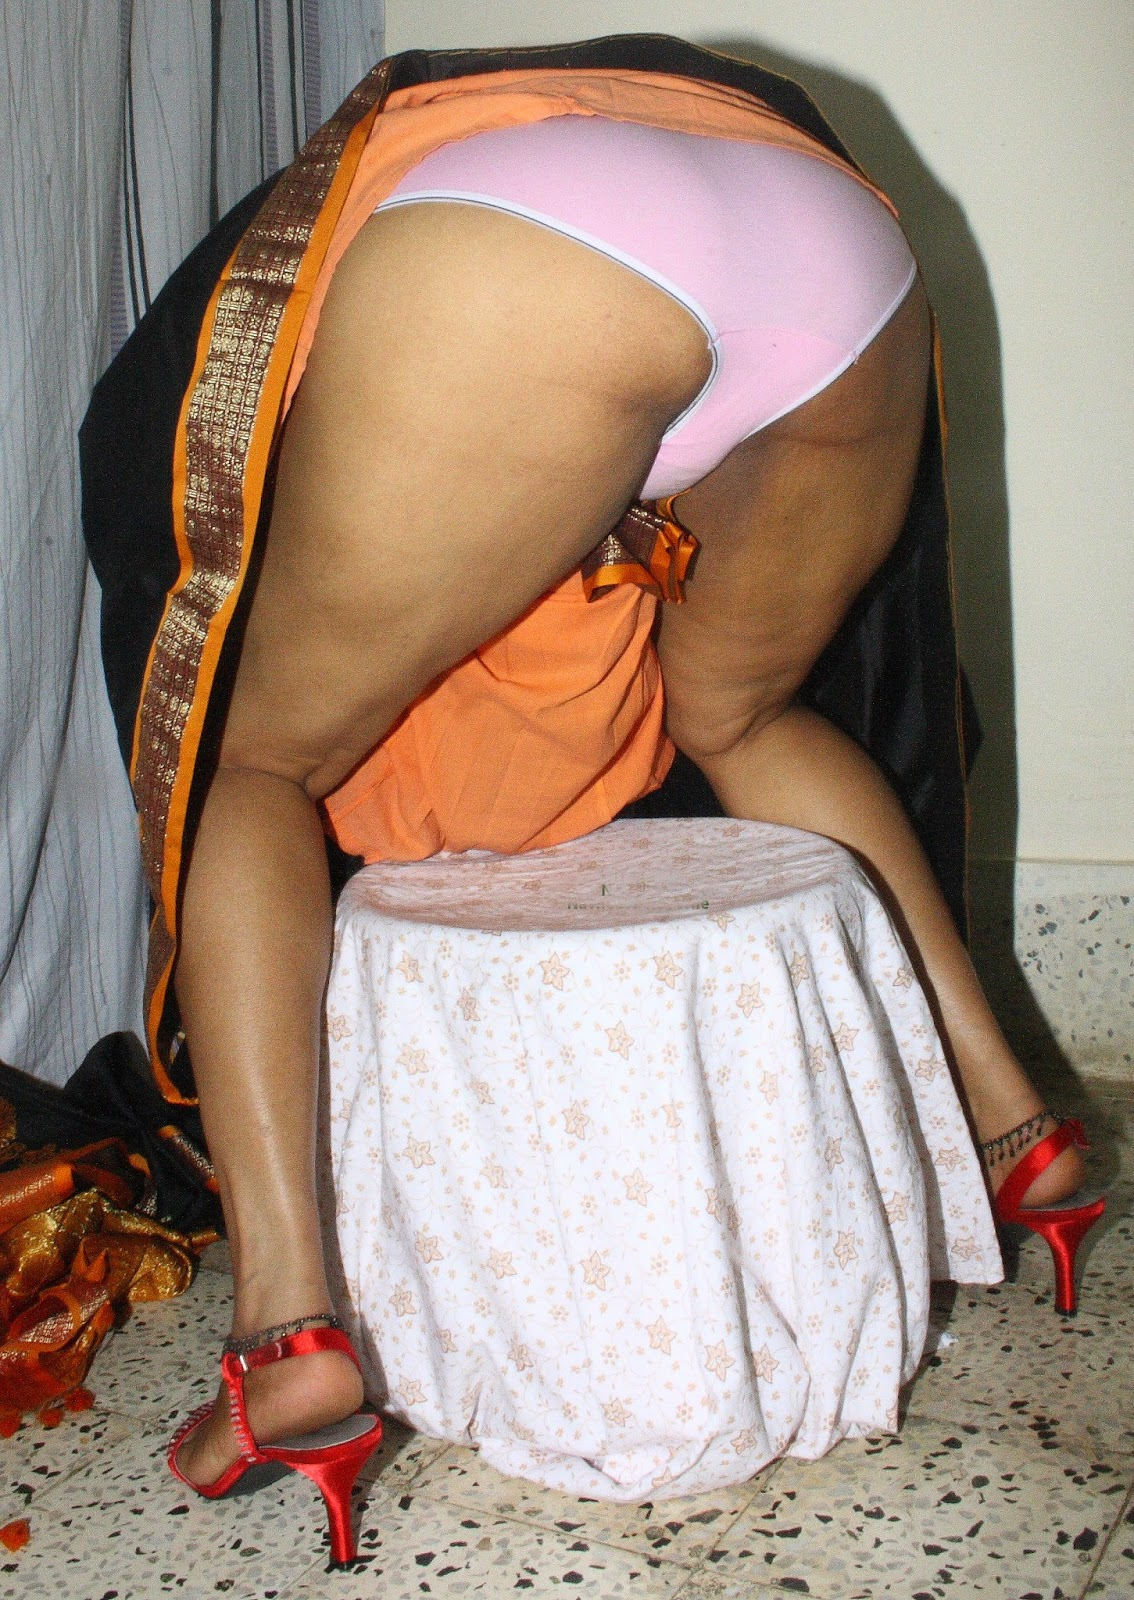 Sorry, that Indian aunties ass upskirt rather